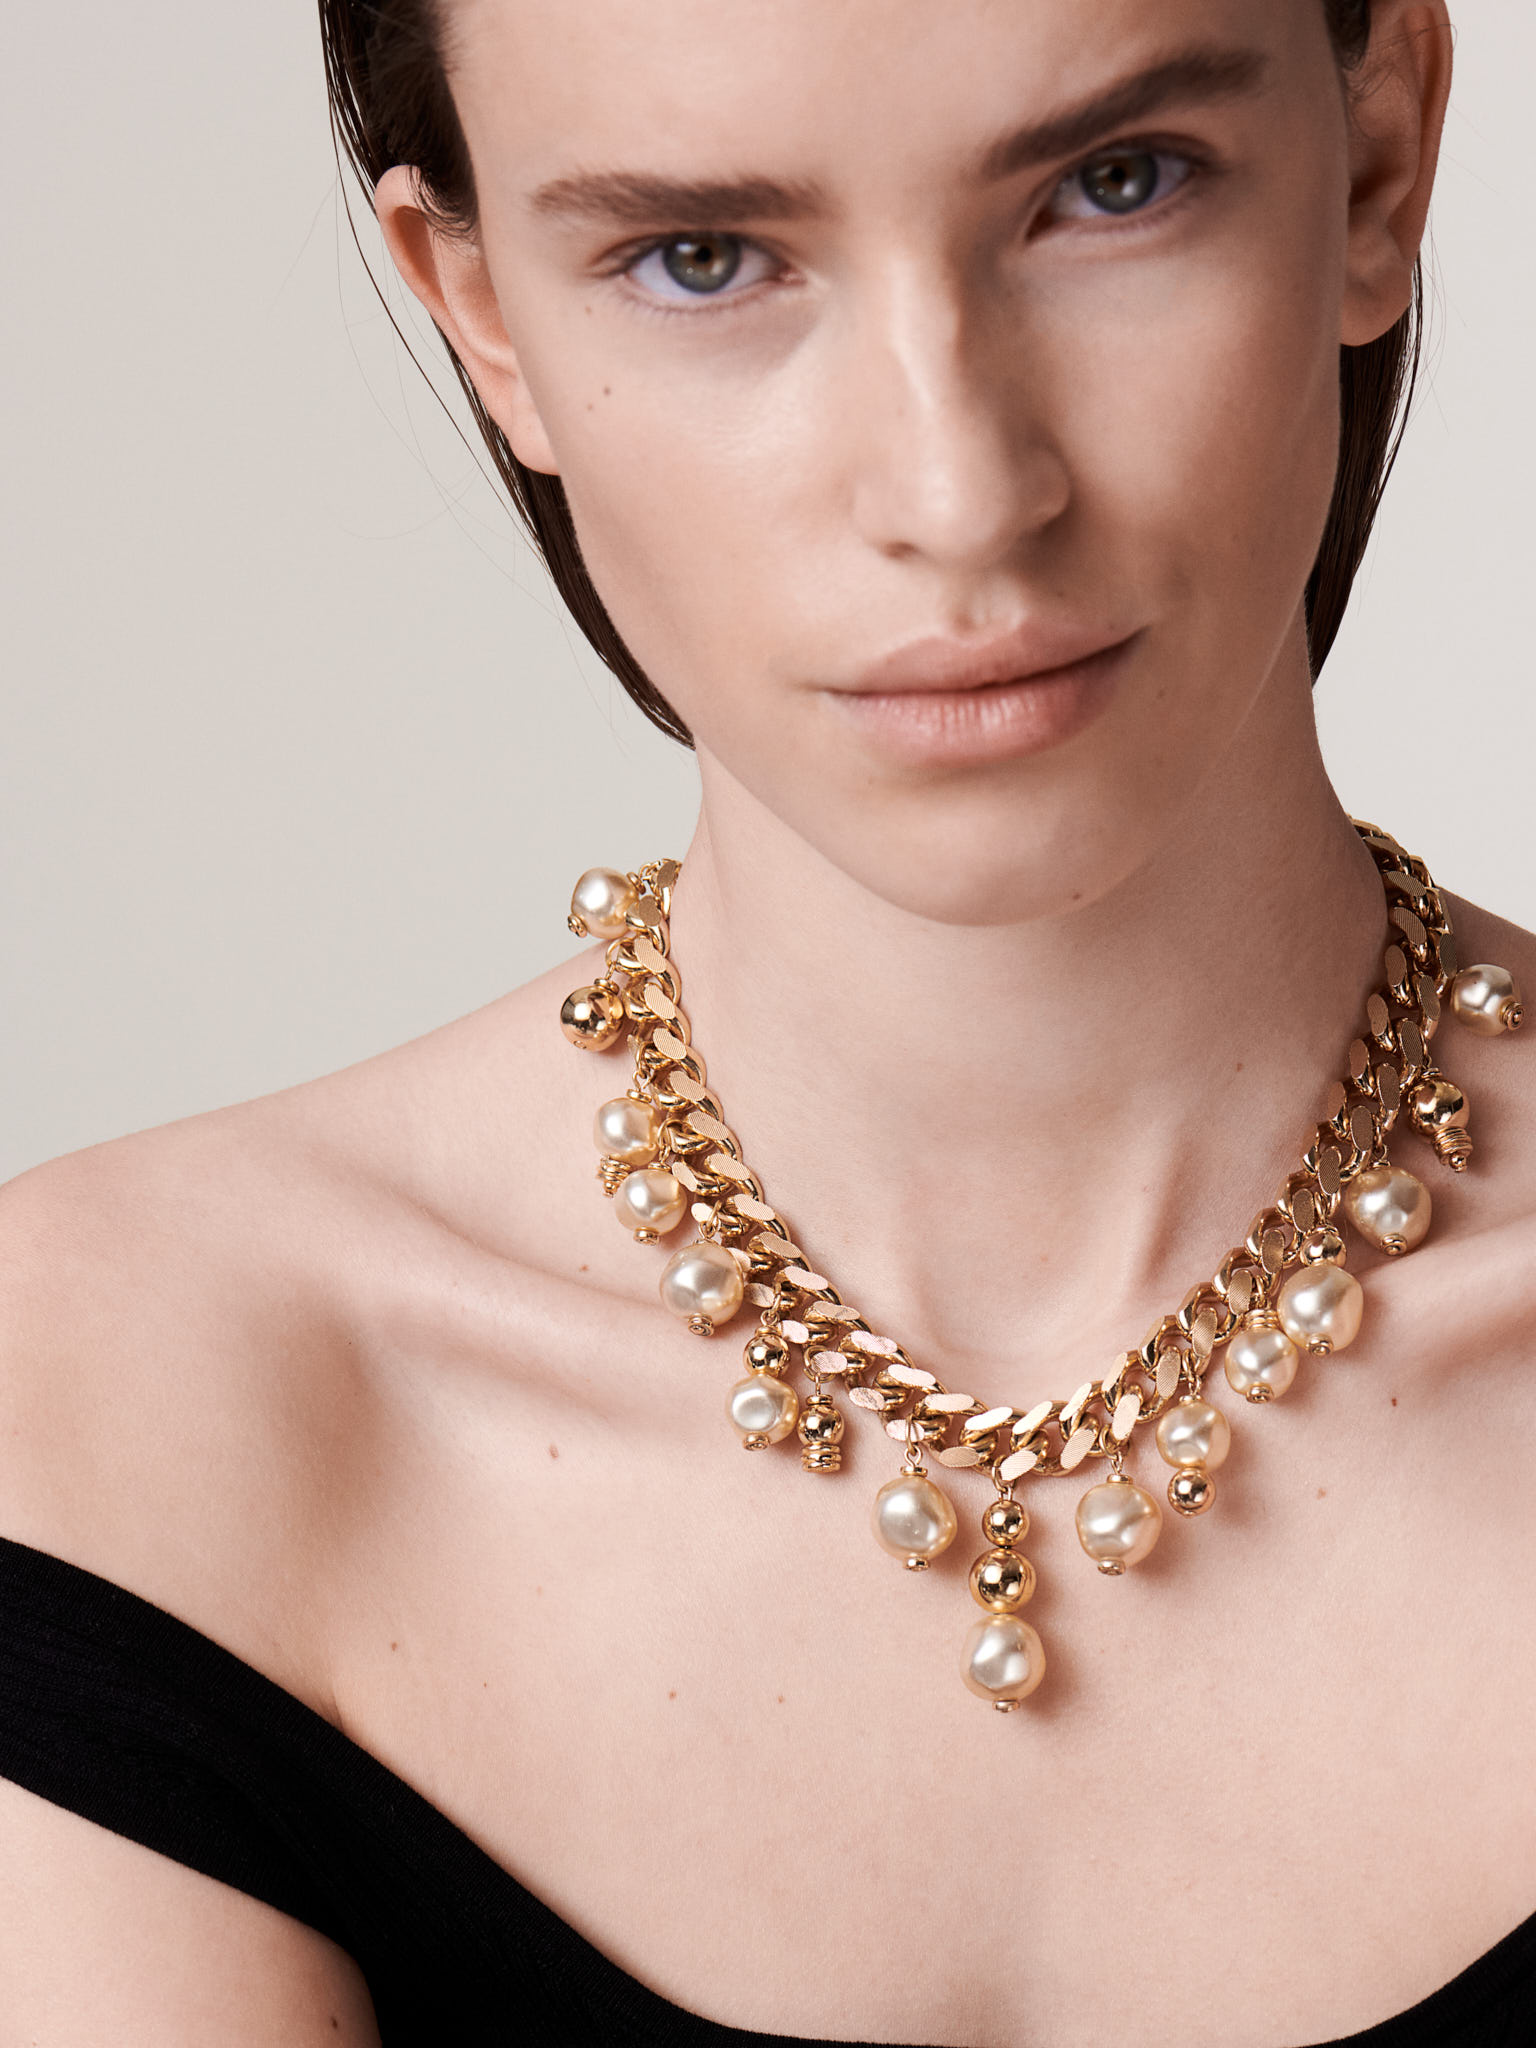 Jennifer Gibson Jewellery at Finematter Dior Necklace